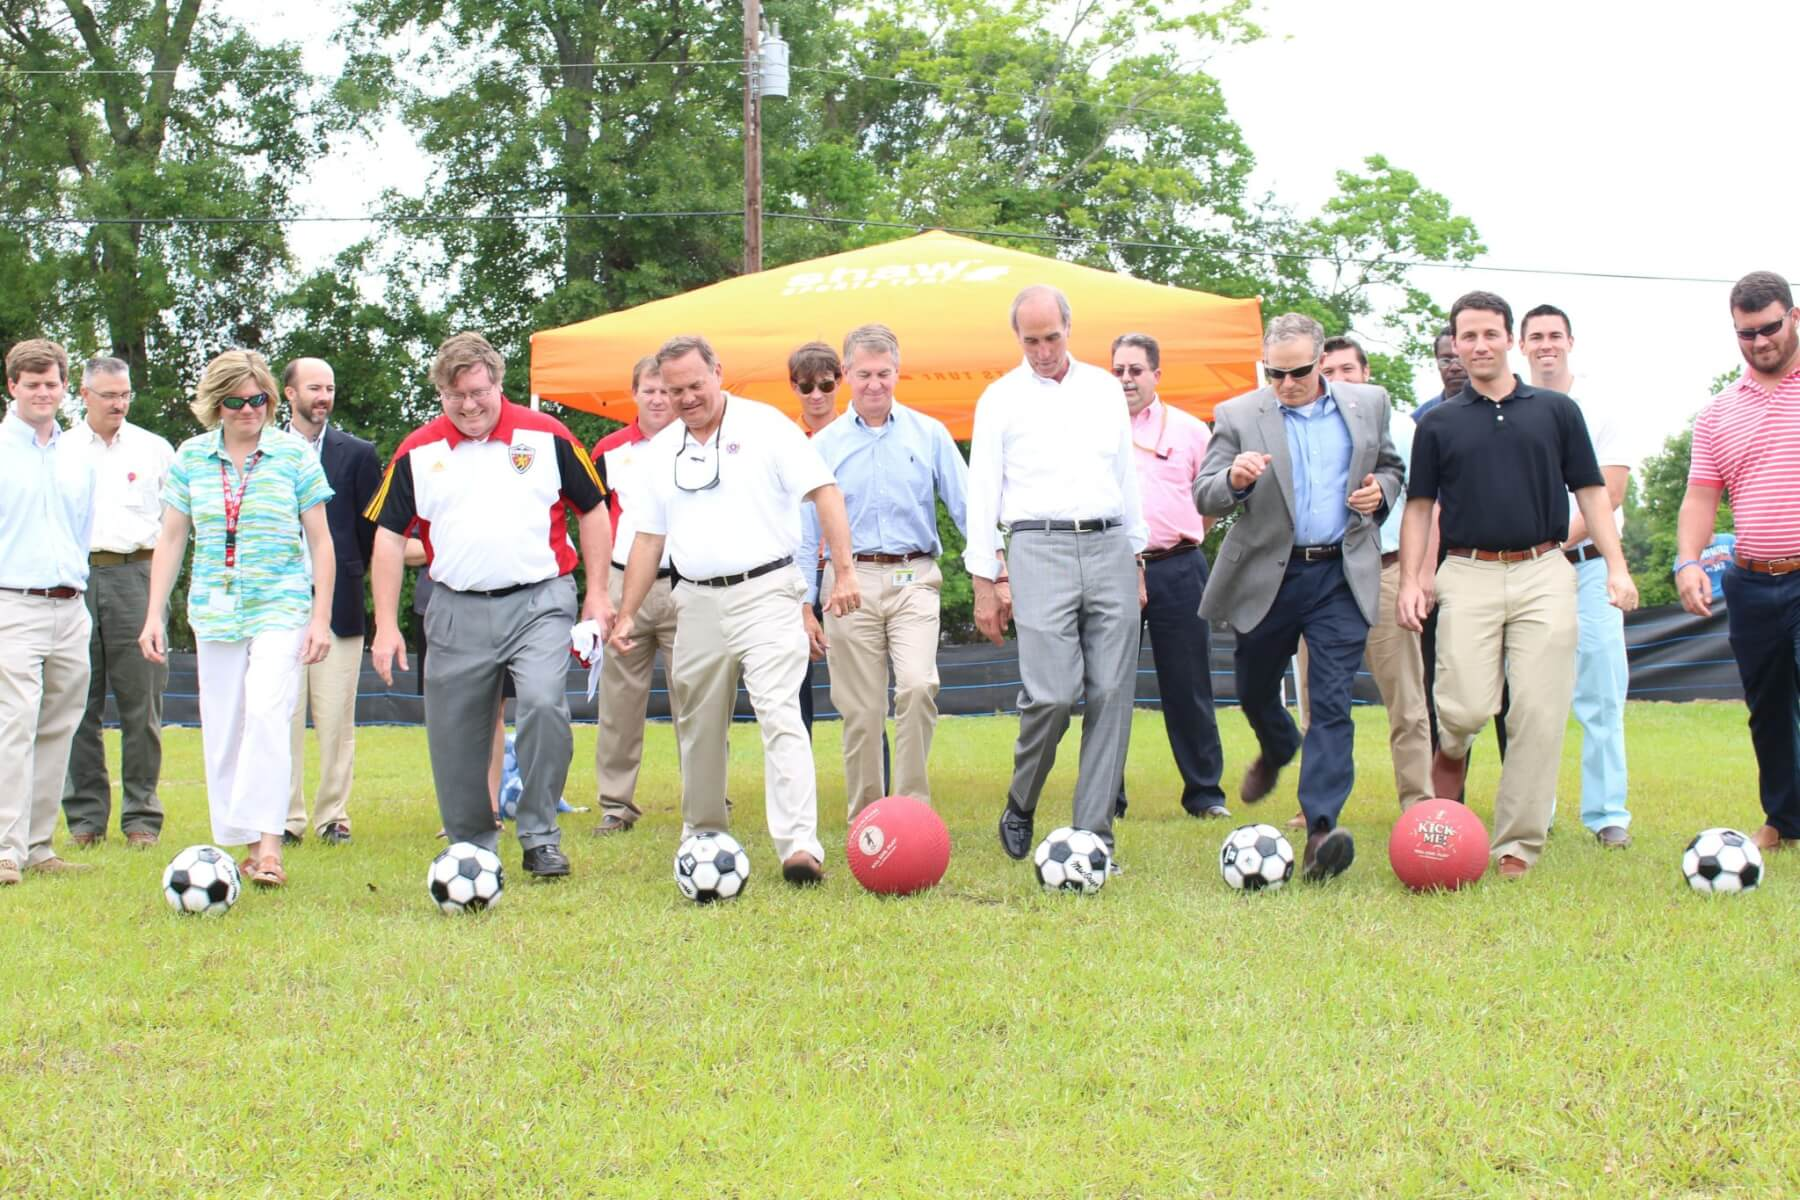 City breaks ground on new soccer fields at Herndon Park